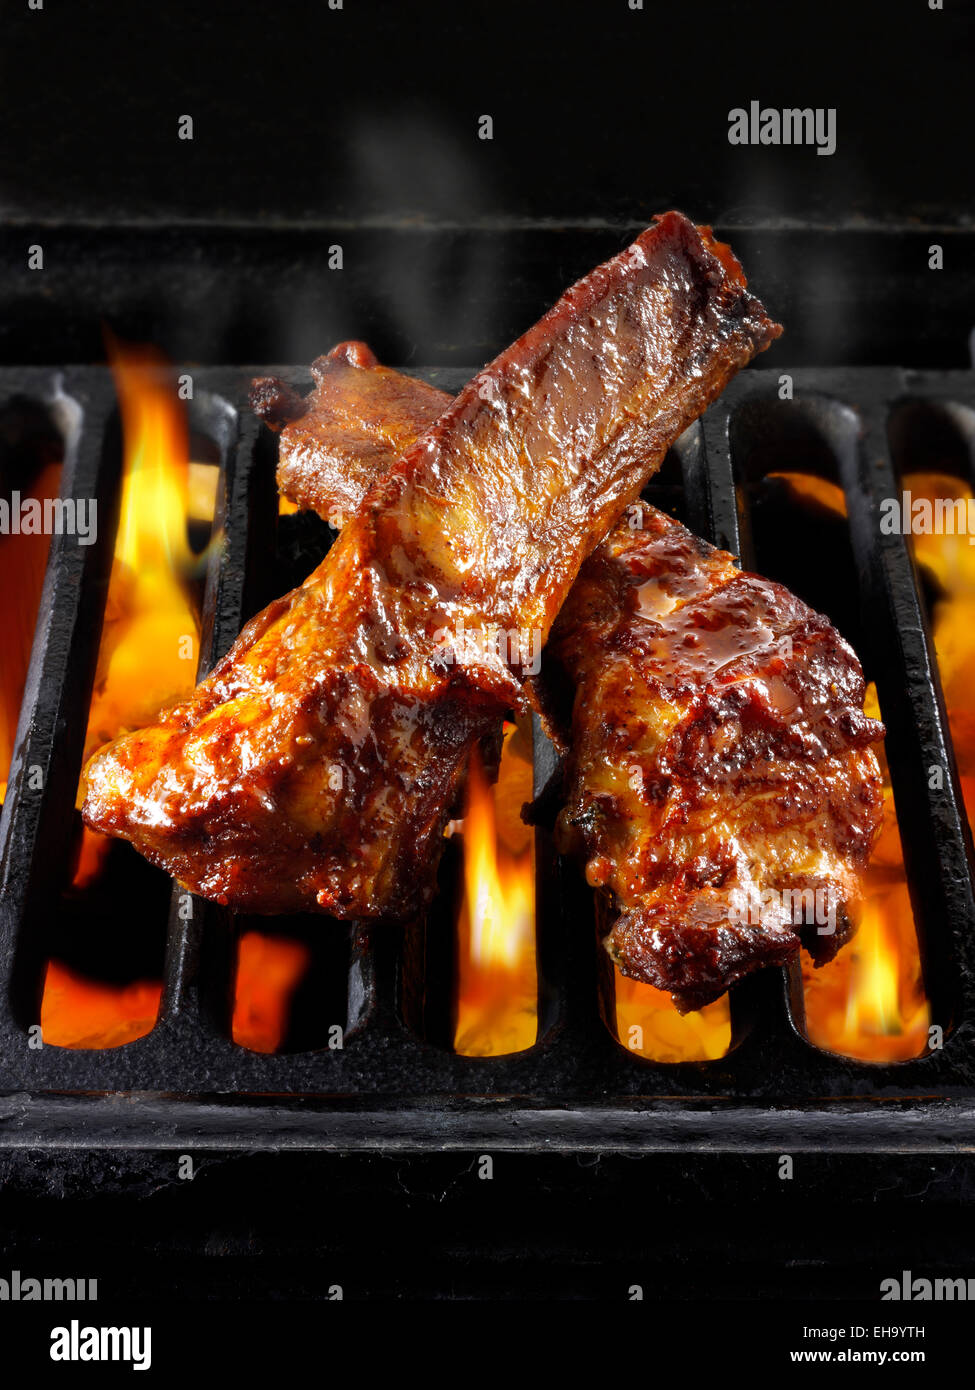 Barbecue spare ribs being cooked over open flames - Stock Image